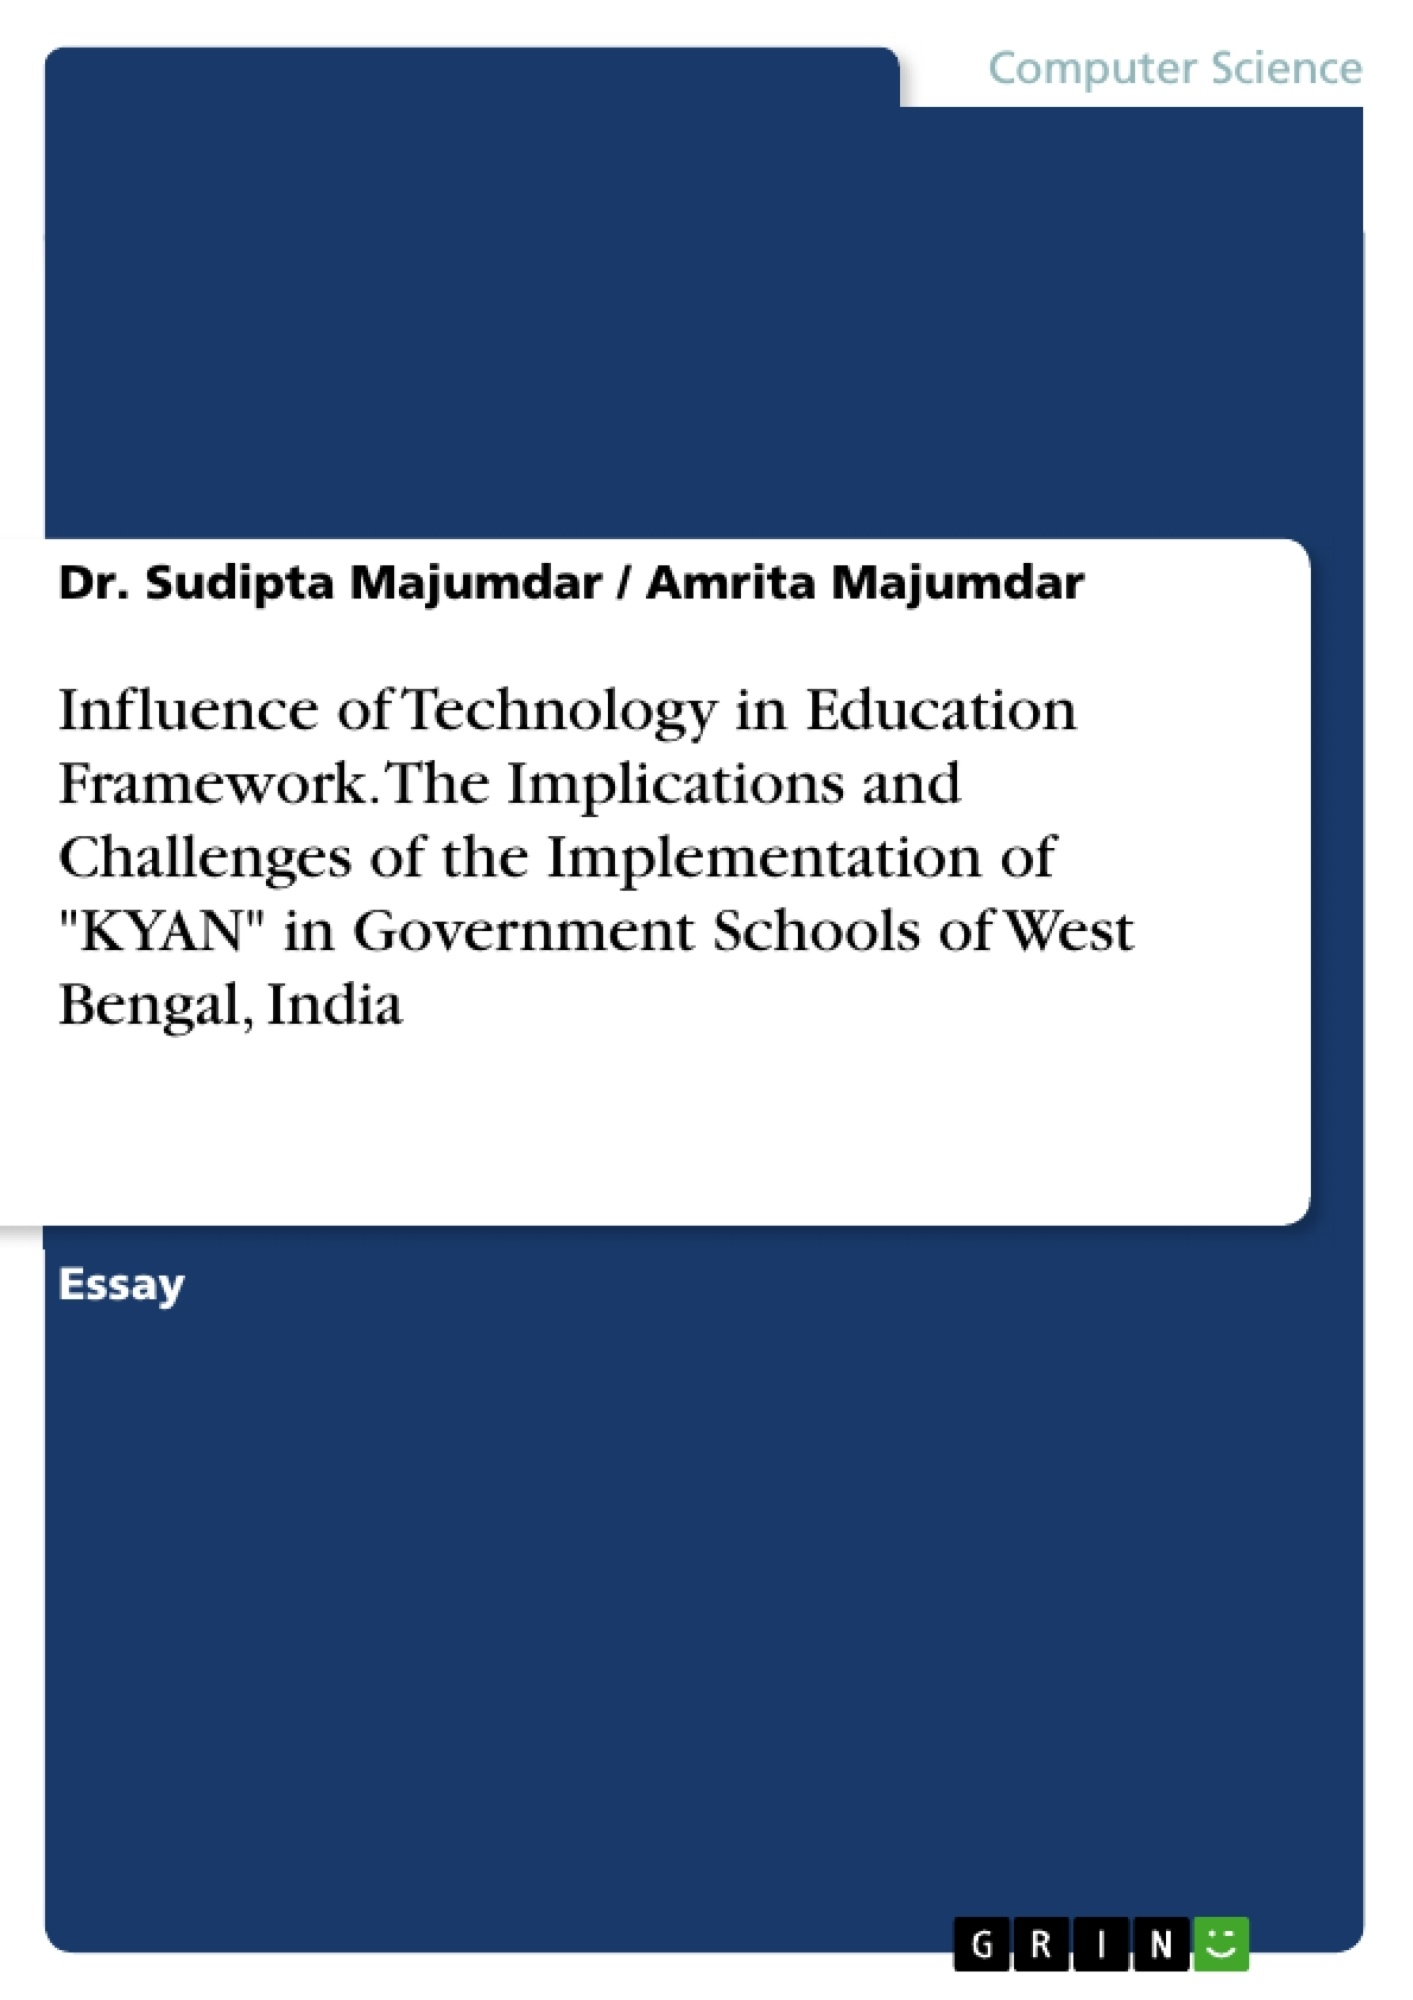 """Title: Influence of Technology in Education Framework. The Implications and Challenges of the Implementation of """"KYAN"""" in Government Schools of West Bengal, India"""